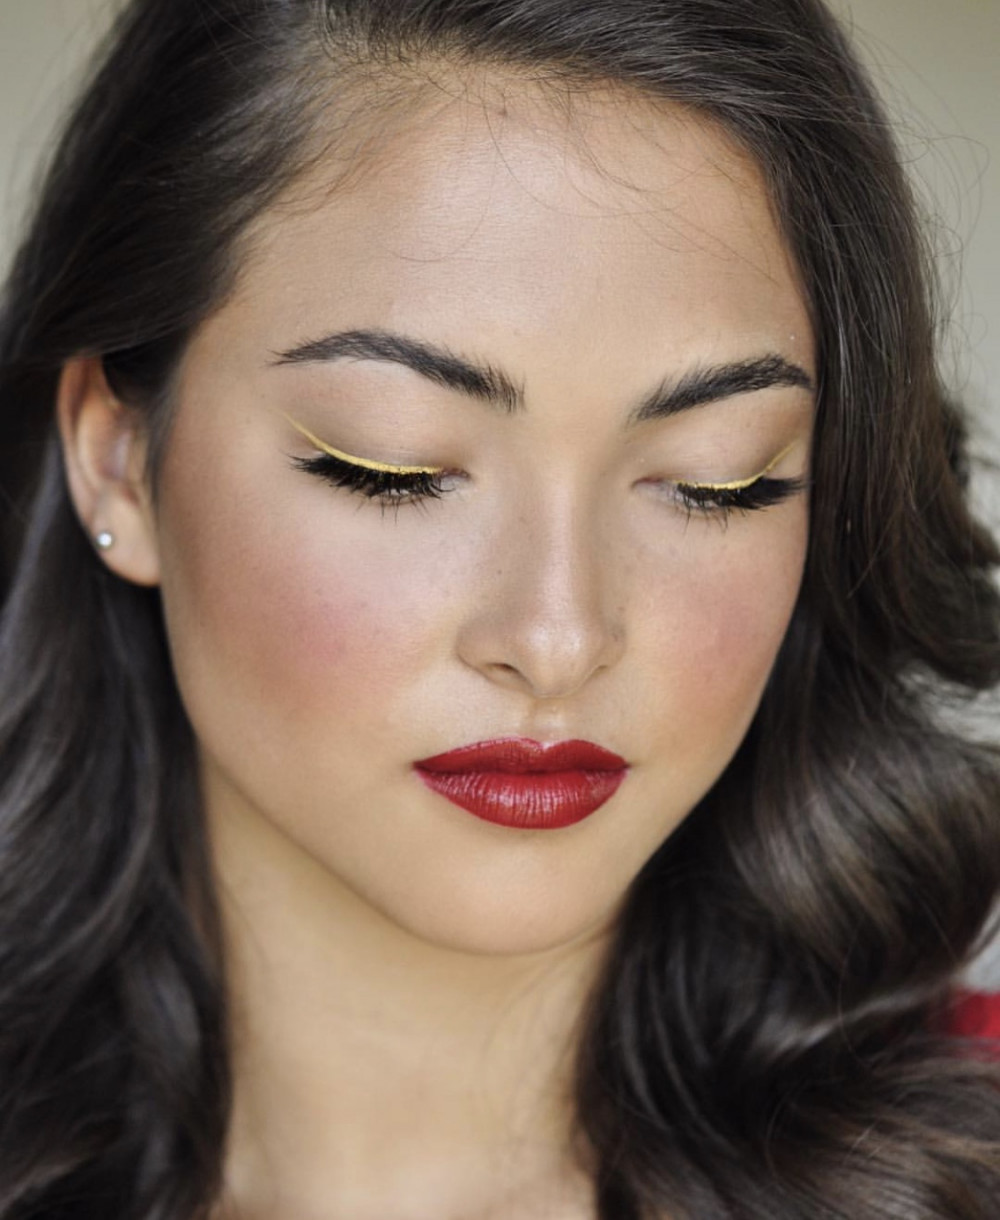 Bridal makeup look with red lips and yellow gold eyeliner on brunette model